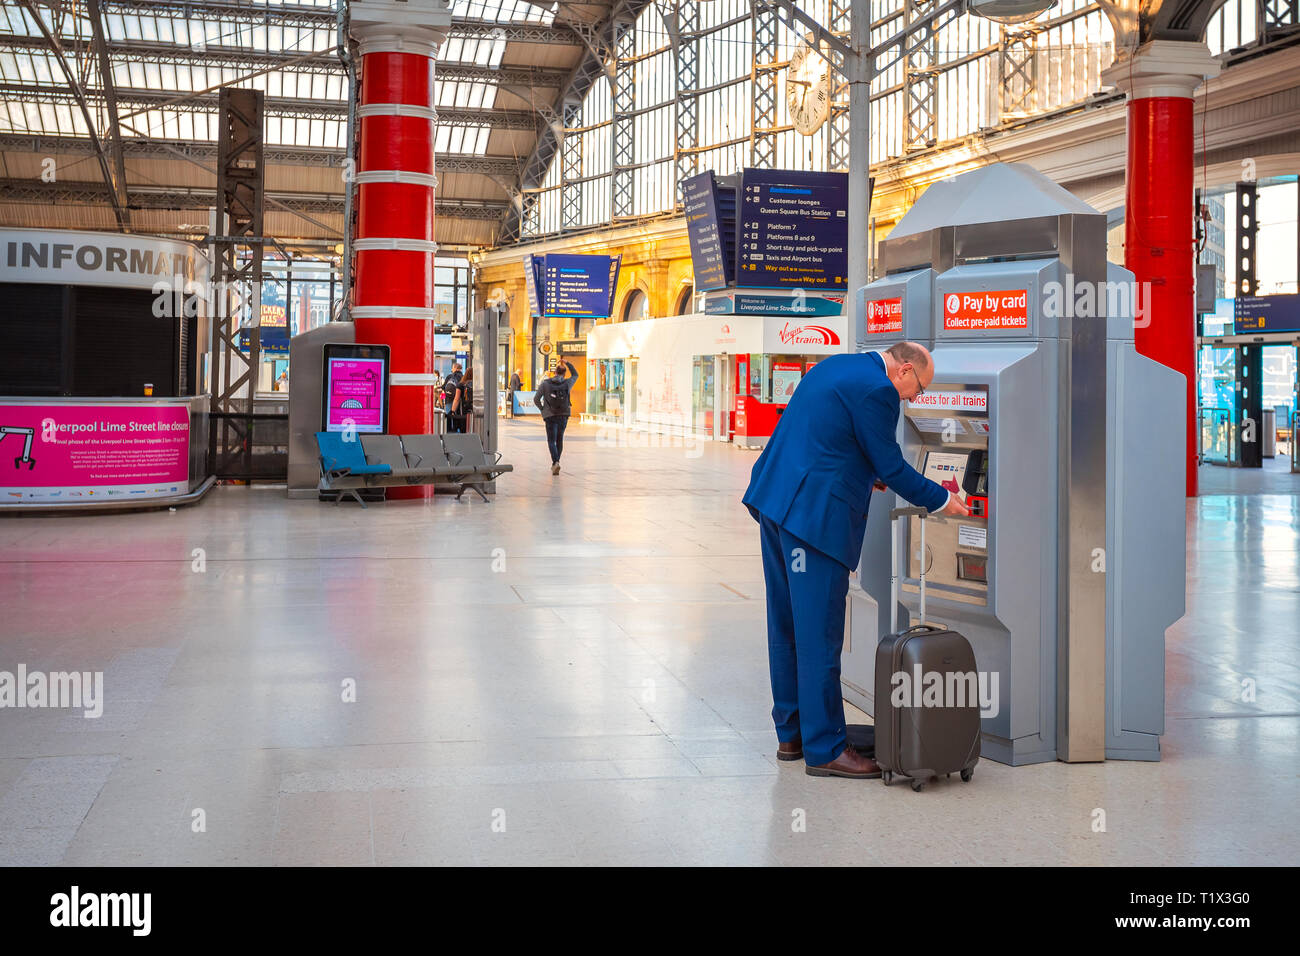 Liverpool, UK - May 18 2018: Unidentified people travel through trains at Liverpool Lime Street station at the Liverpool city centre - Stock Image